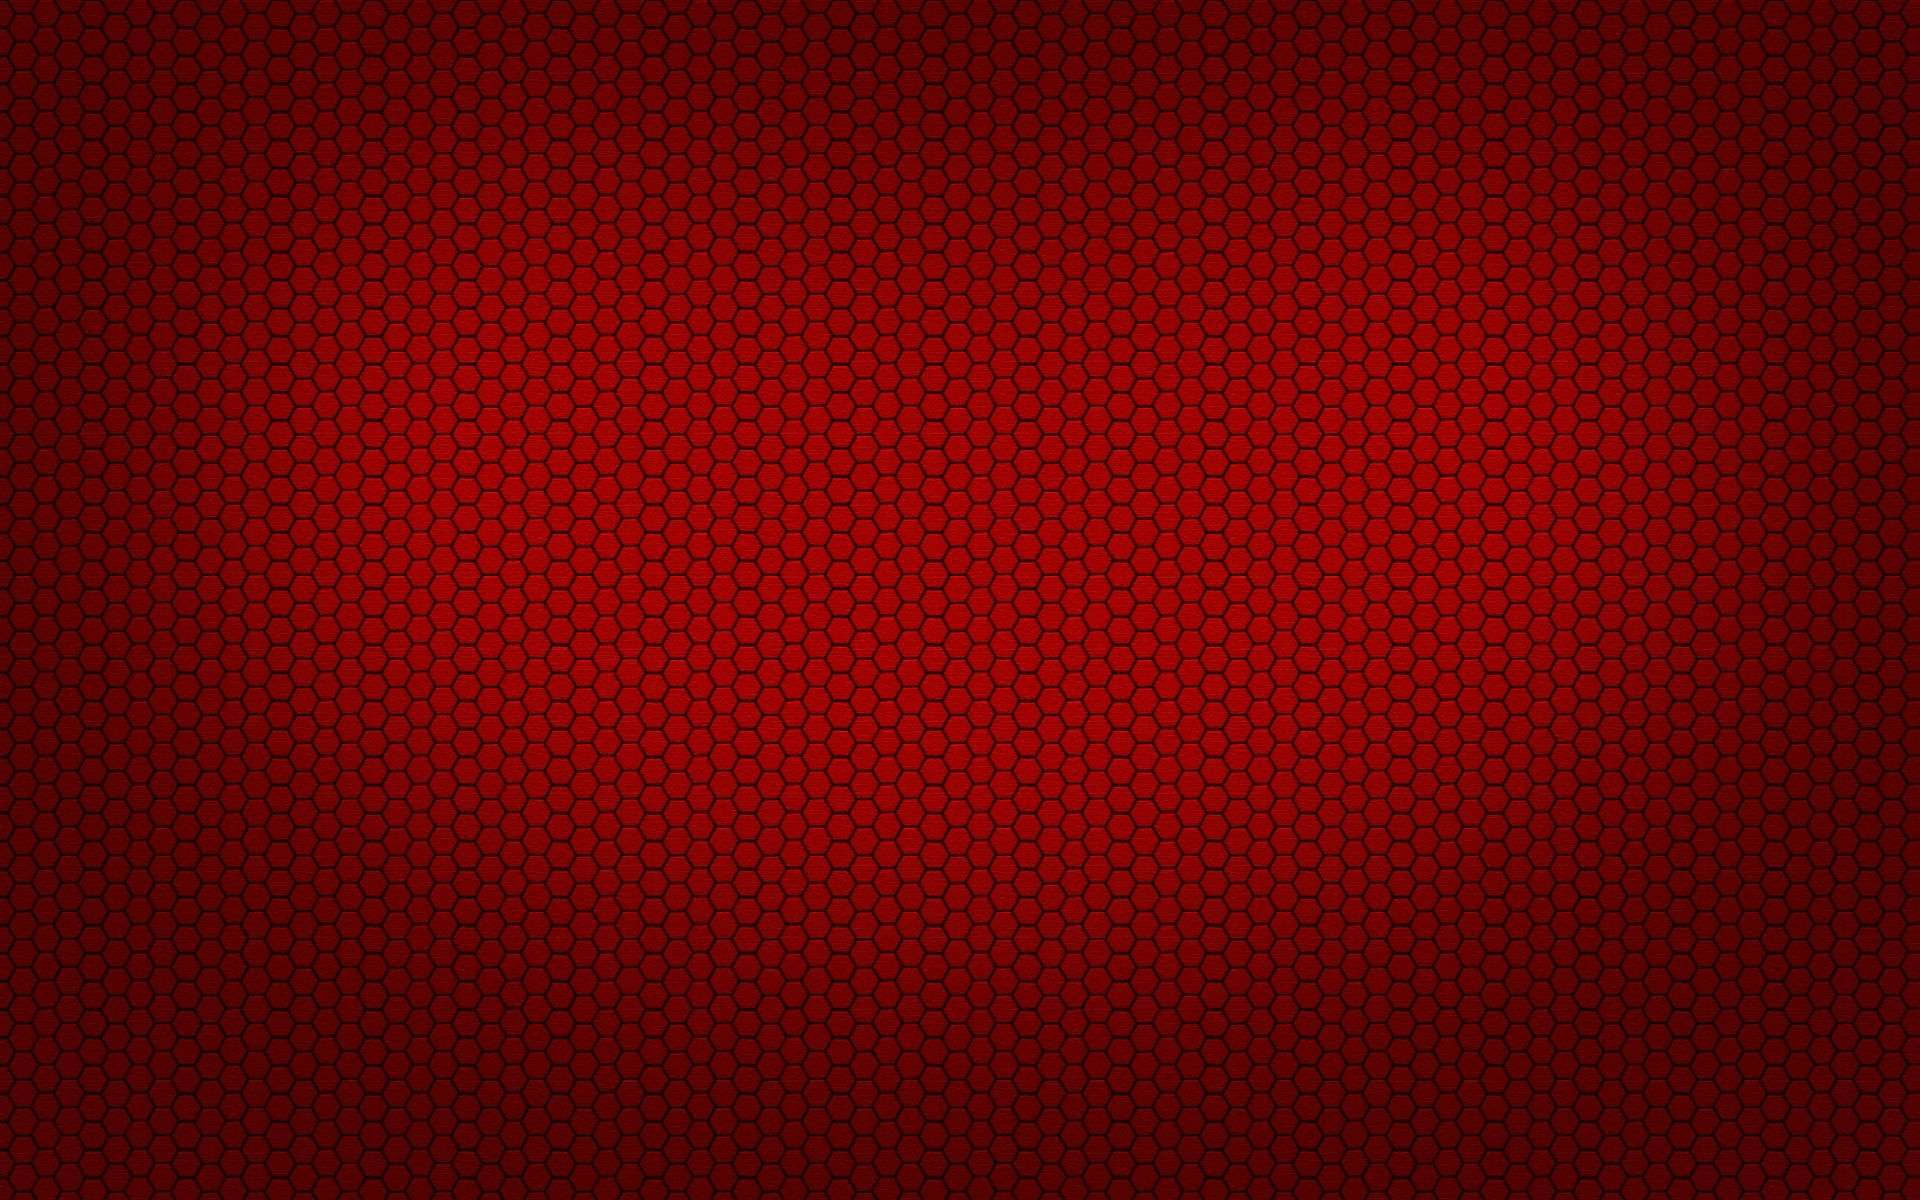 Red Wallpaper 019